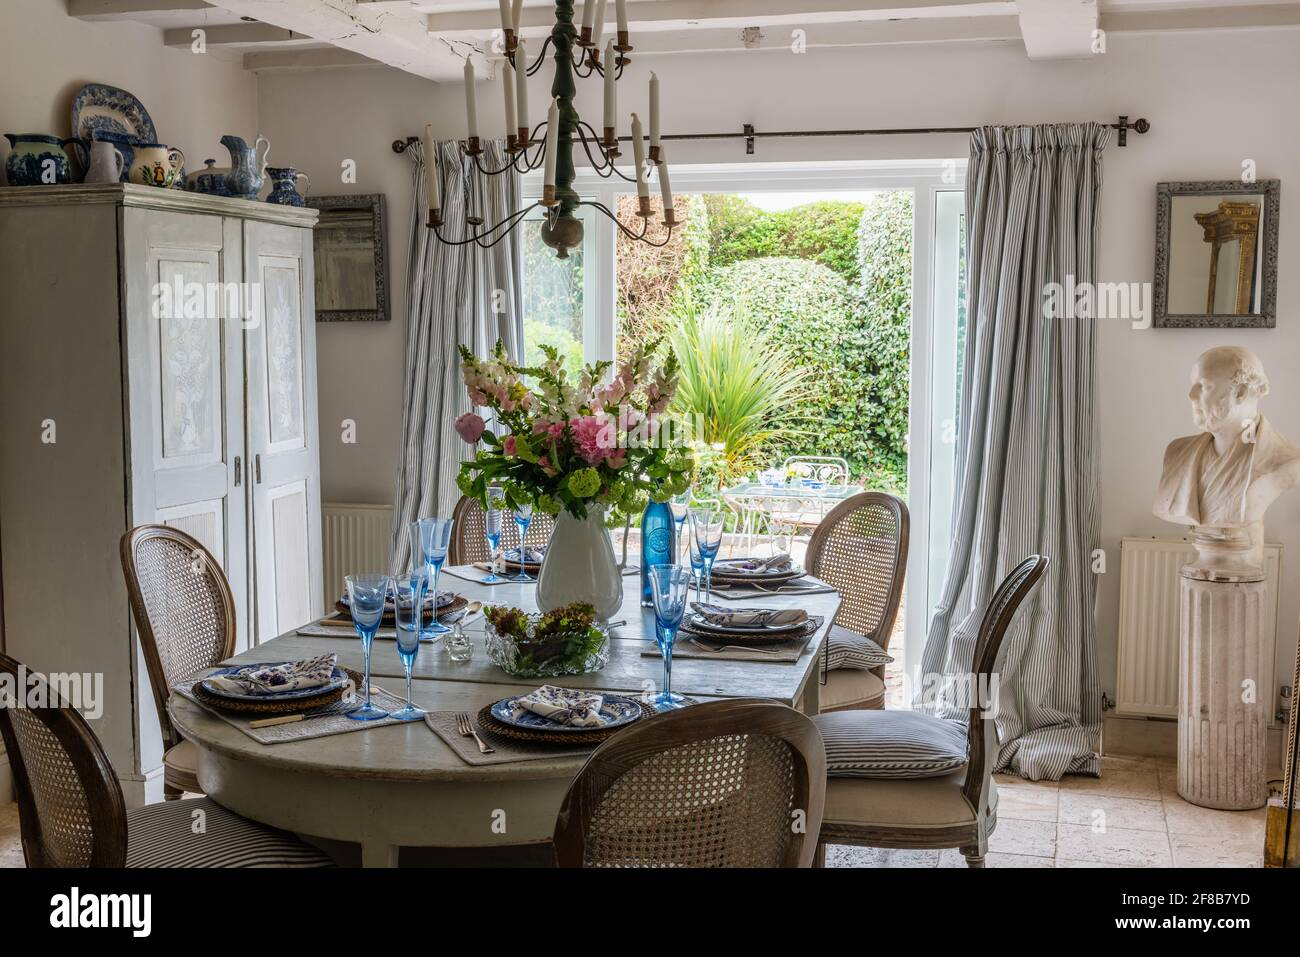 Glassware on dining table with view to garden in 1930s West Sussex coastal renovation. Stock Photo